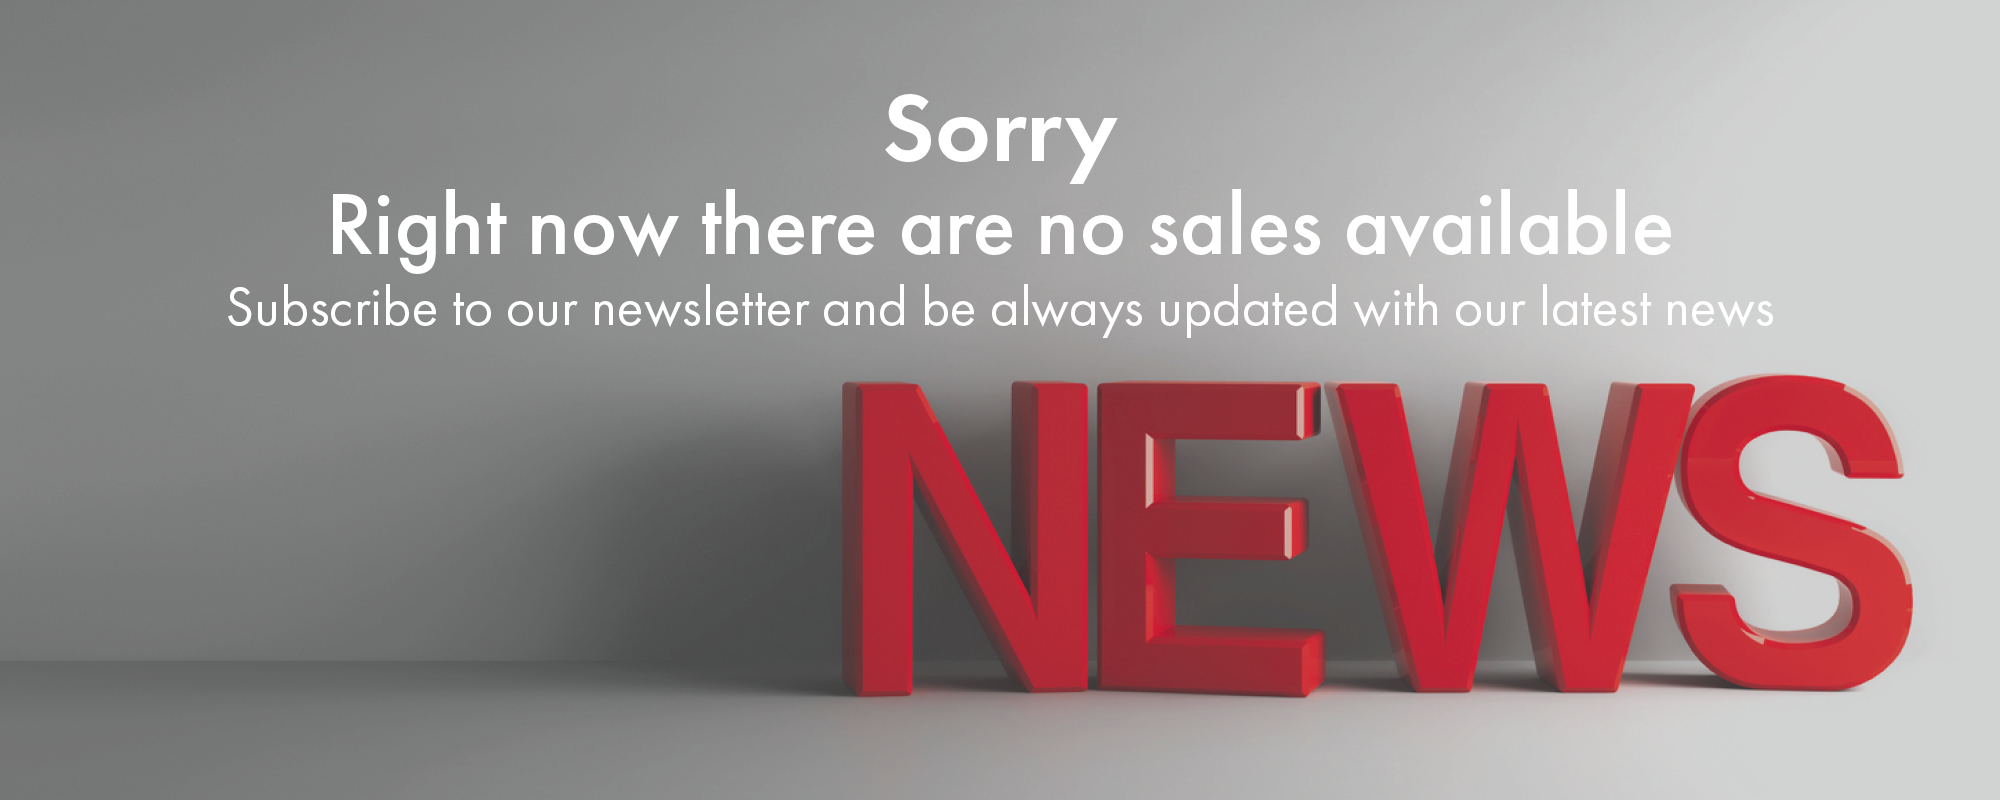 Banner-Sorry-no-sale-1500x600px